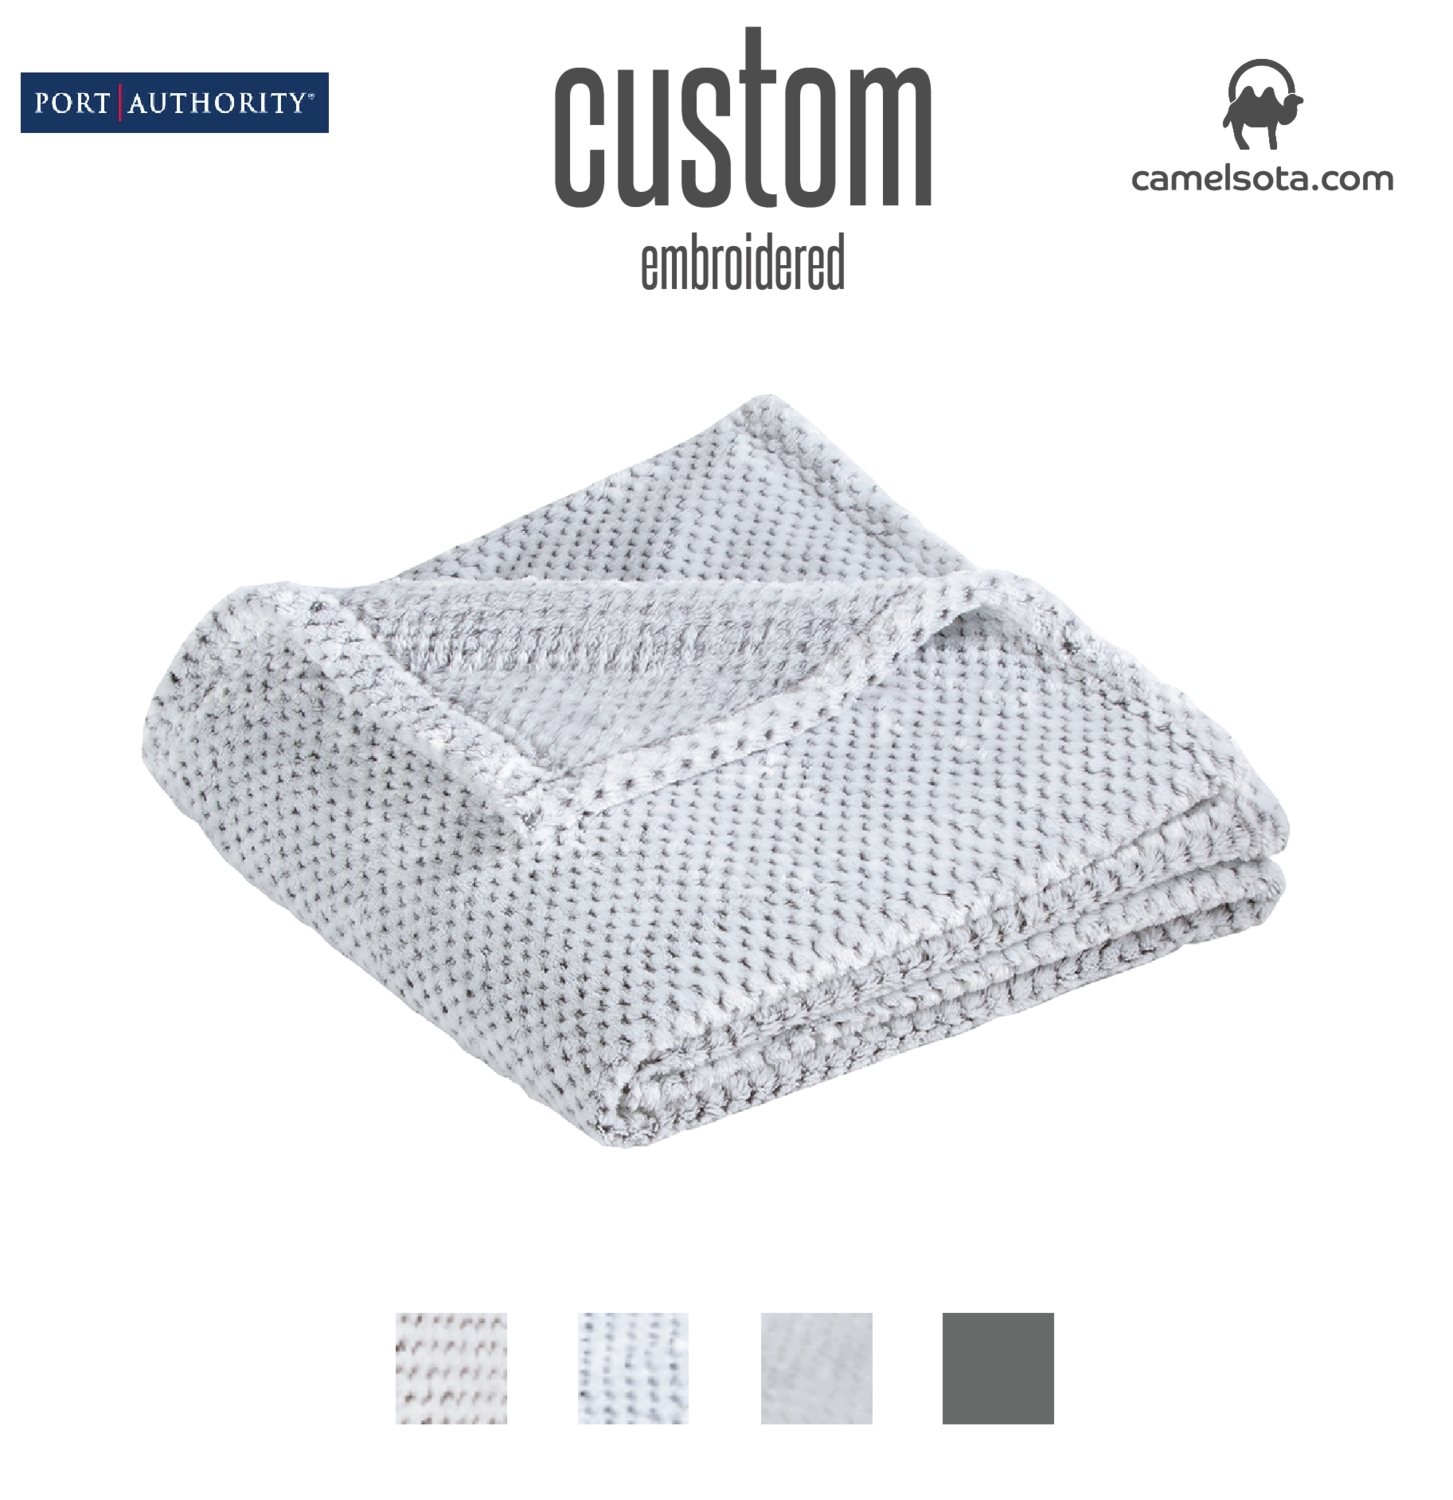 Custom Embroidered Port Authority ® Plush Texture Blanket